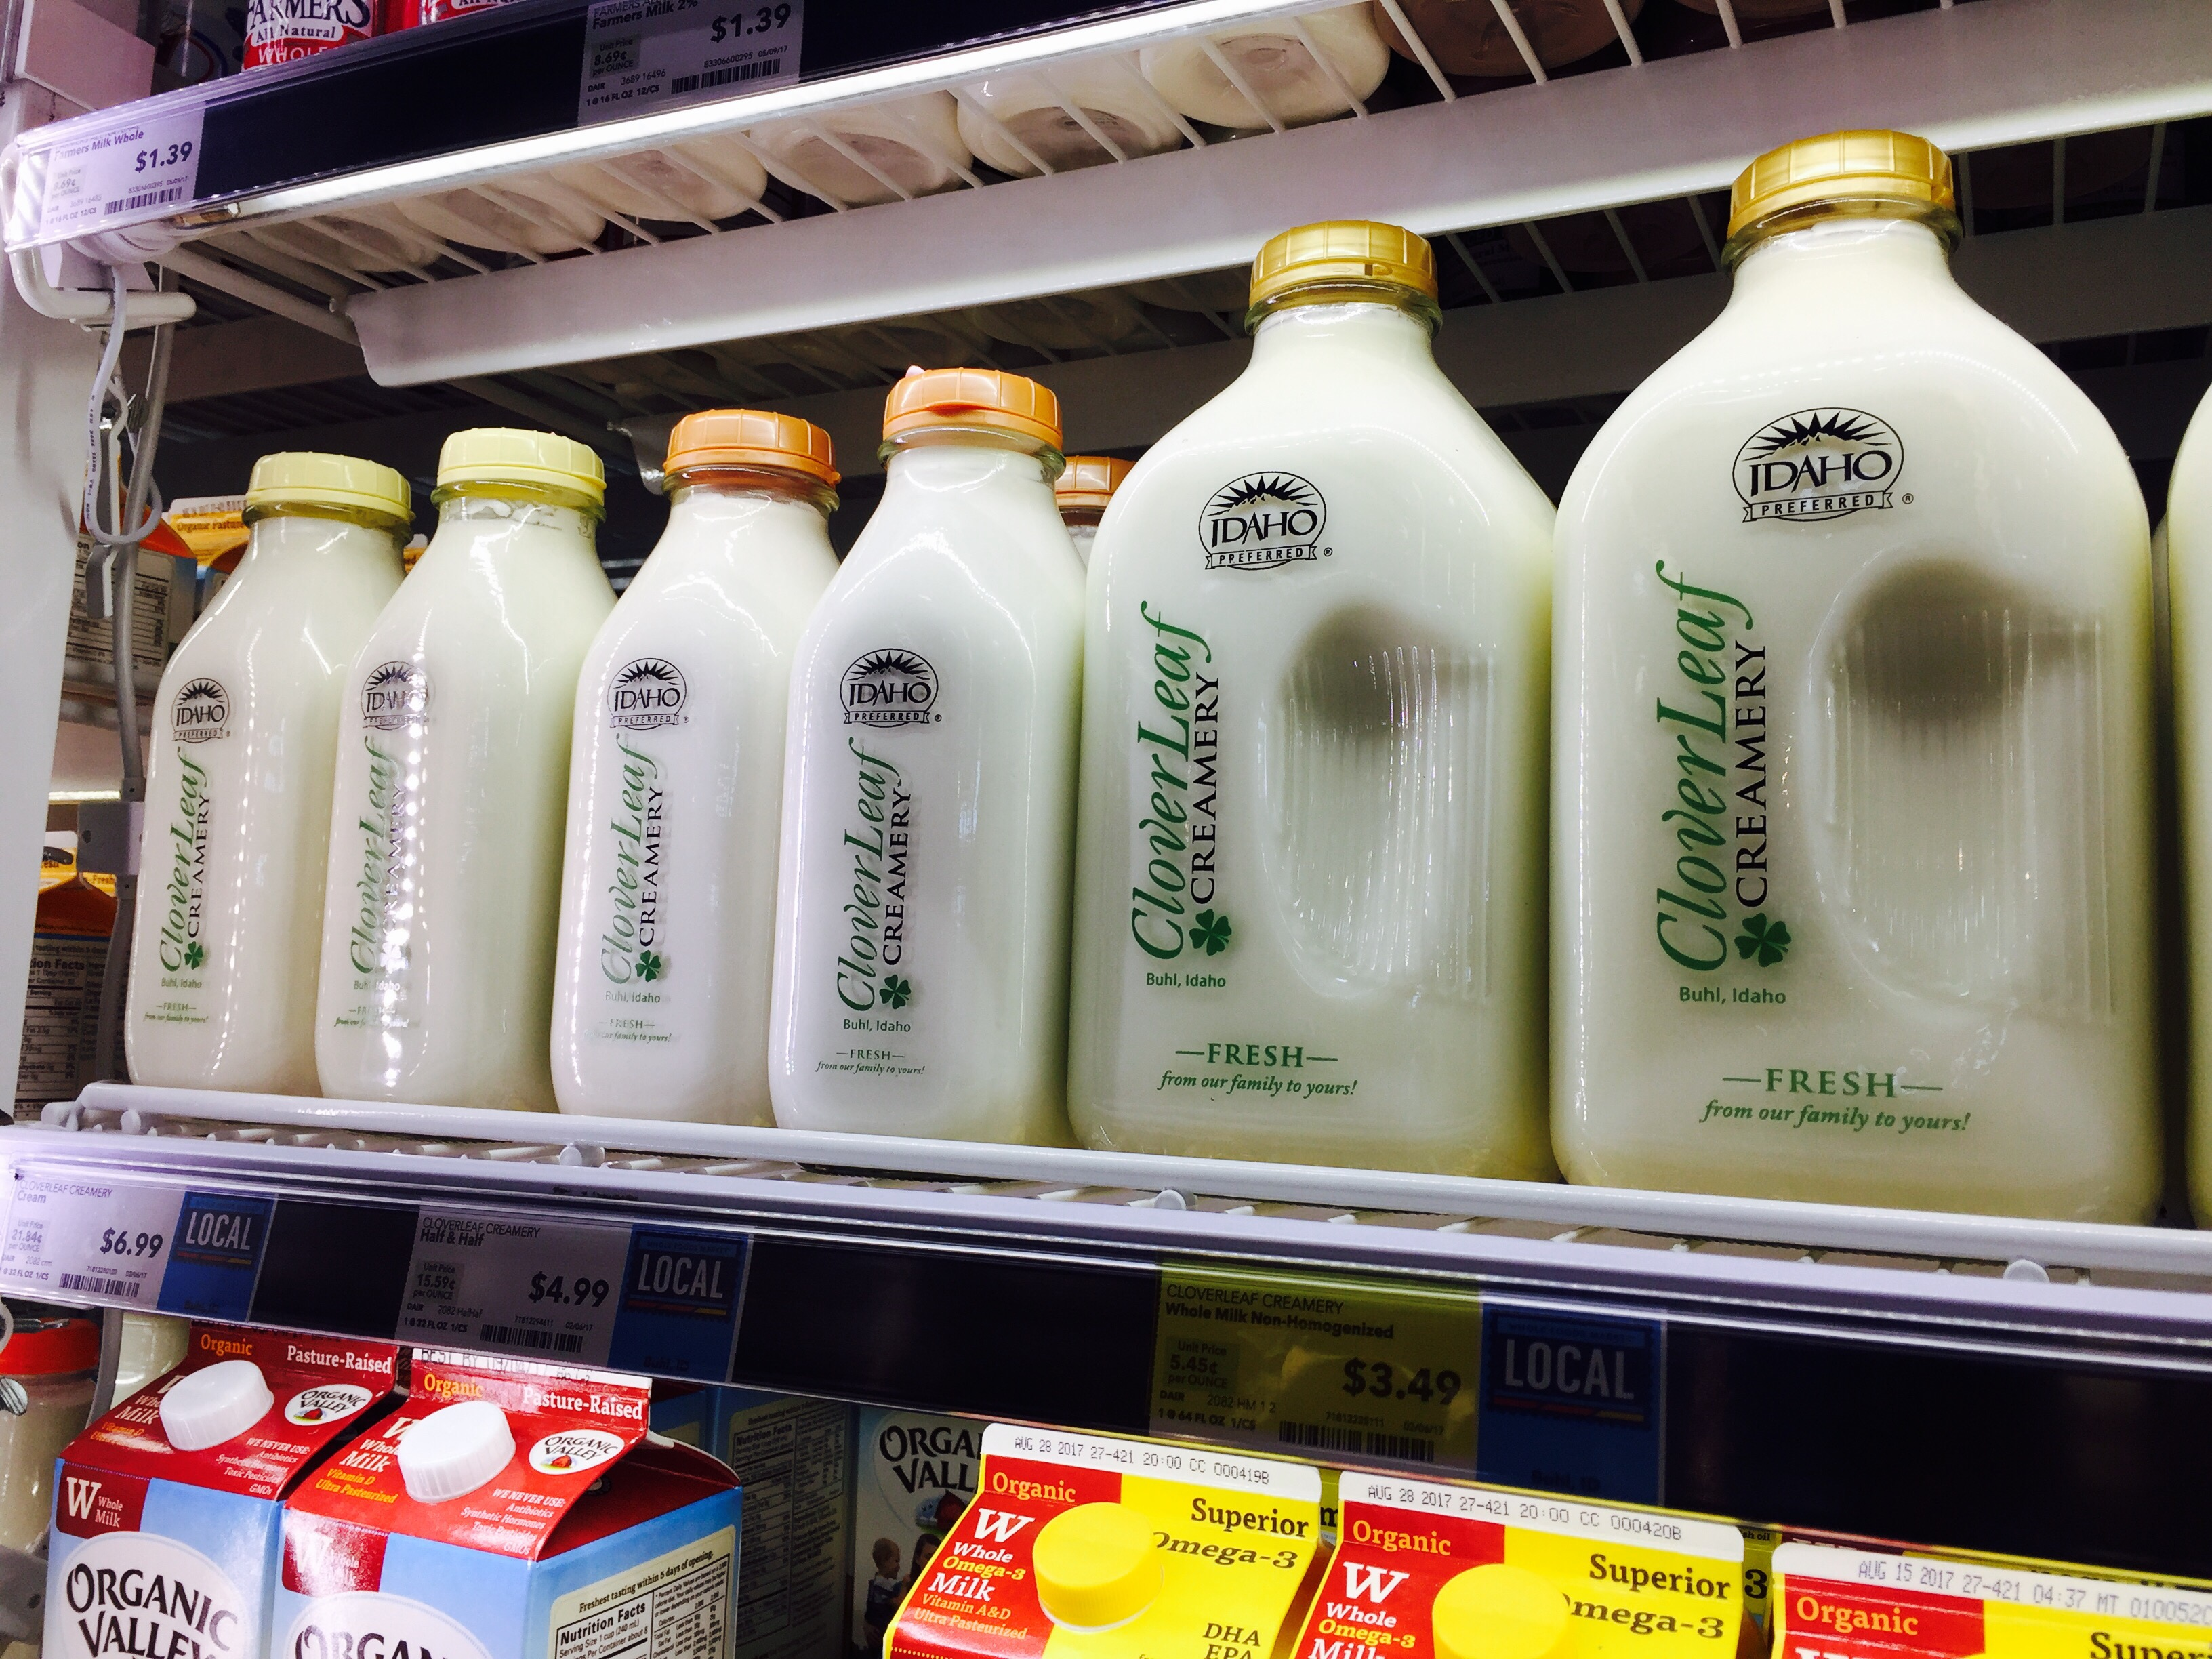 money-saving hacks at Whole Foods Market – refrigerated milk in glass bottles